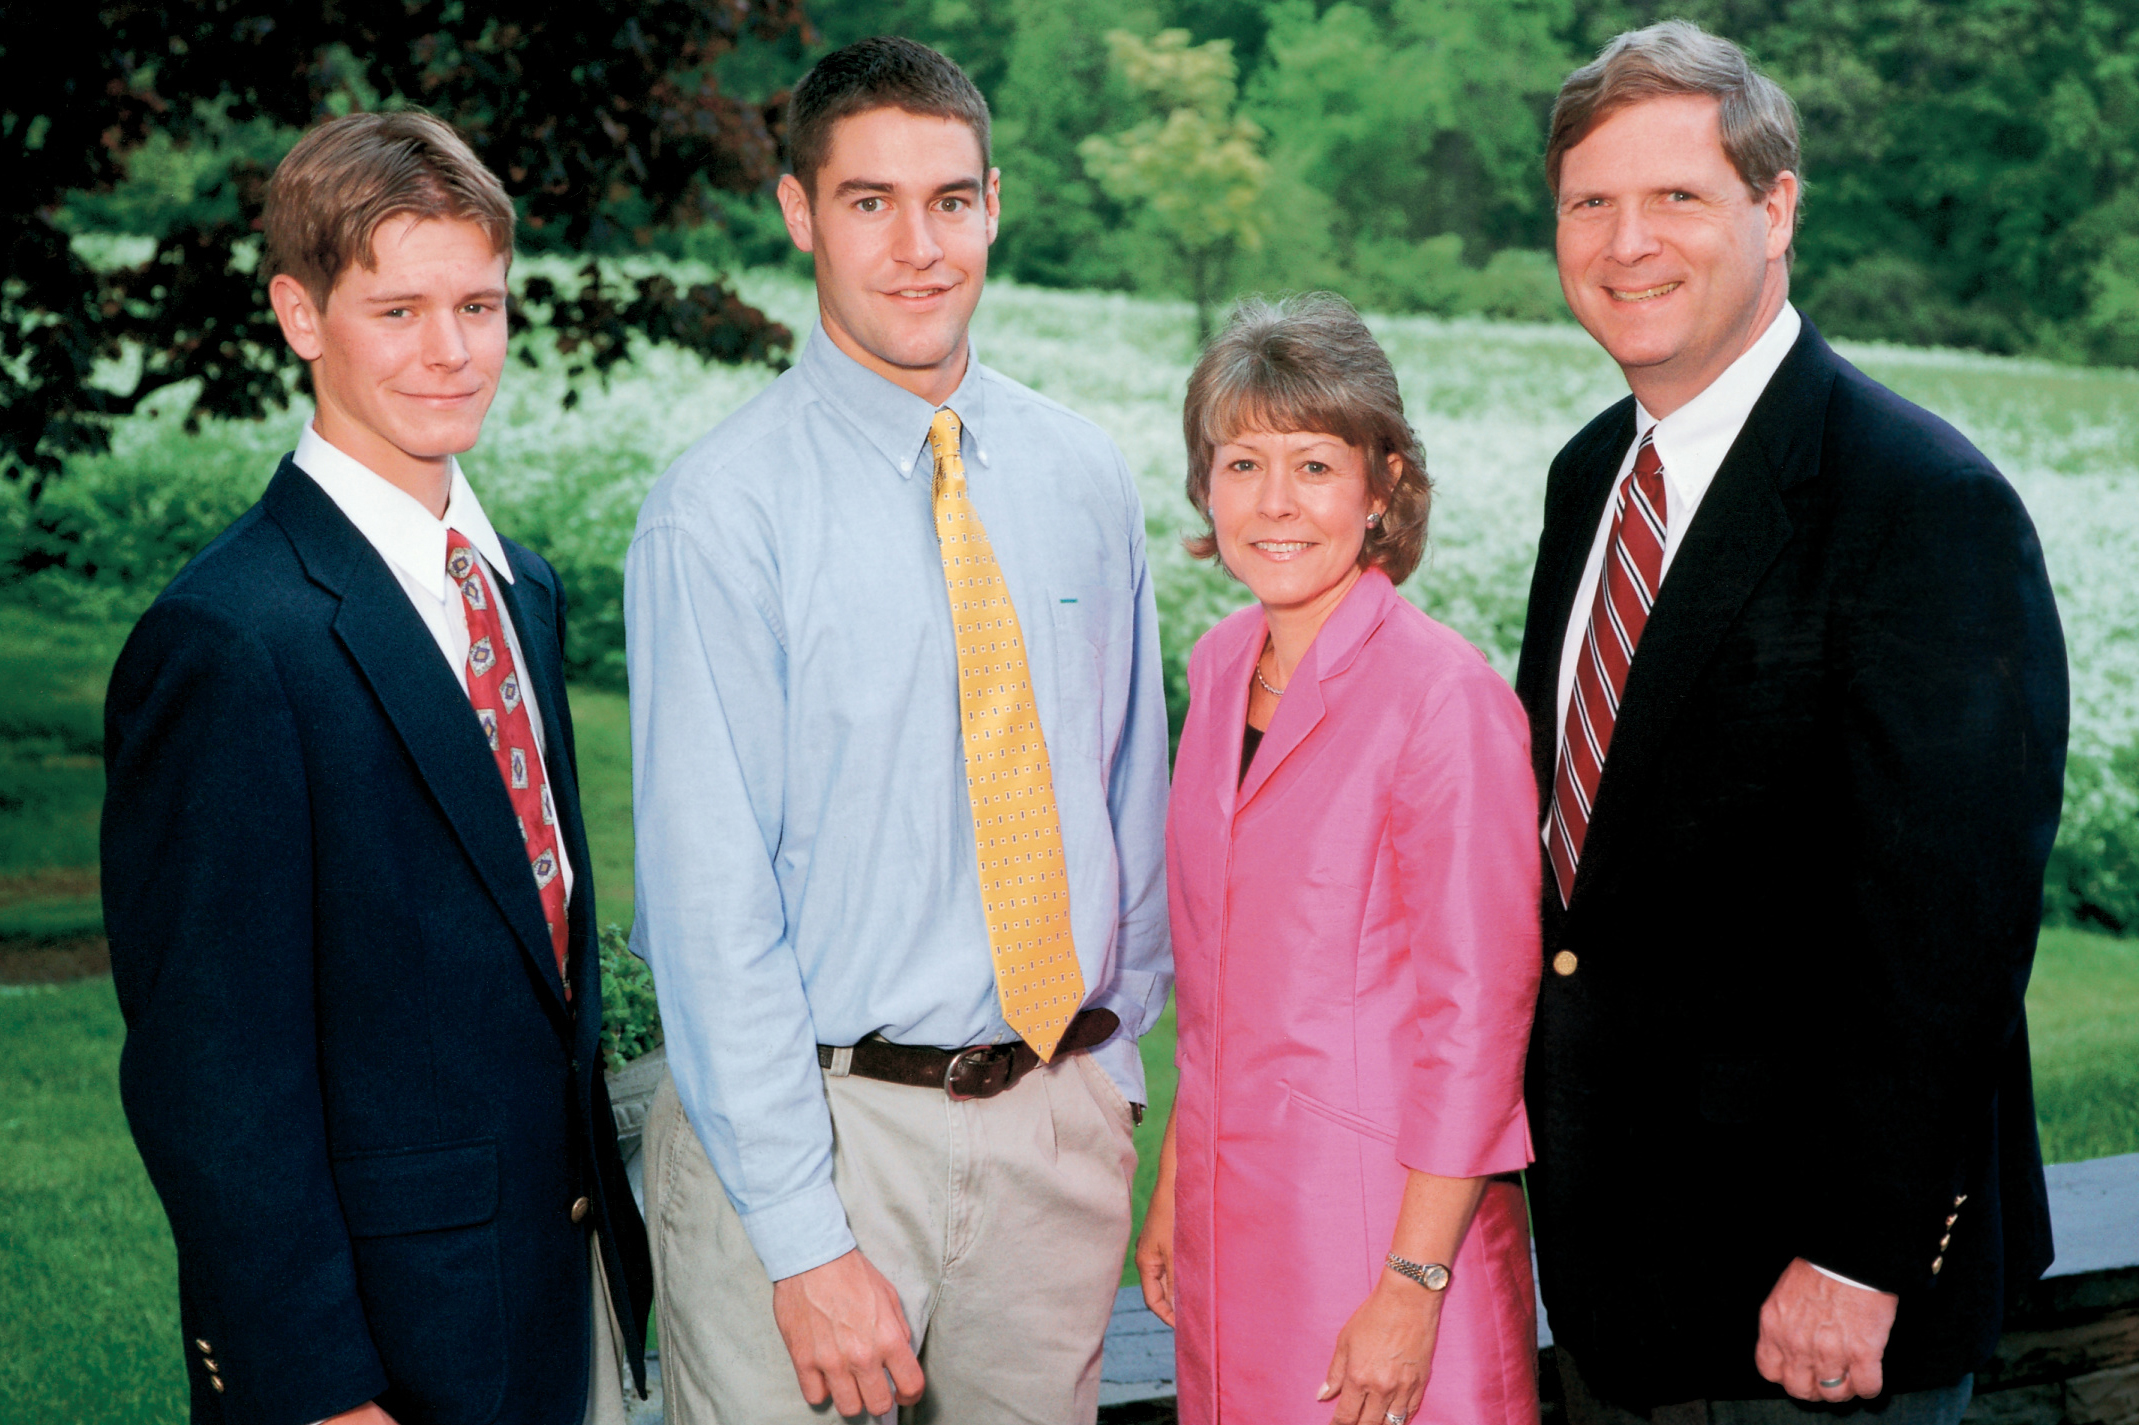 Tom and Christie Vilsack with sons Doug (left) and Jess during Hamilton's Commencement Weekend in May.